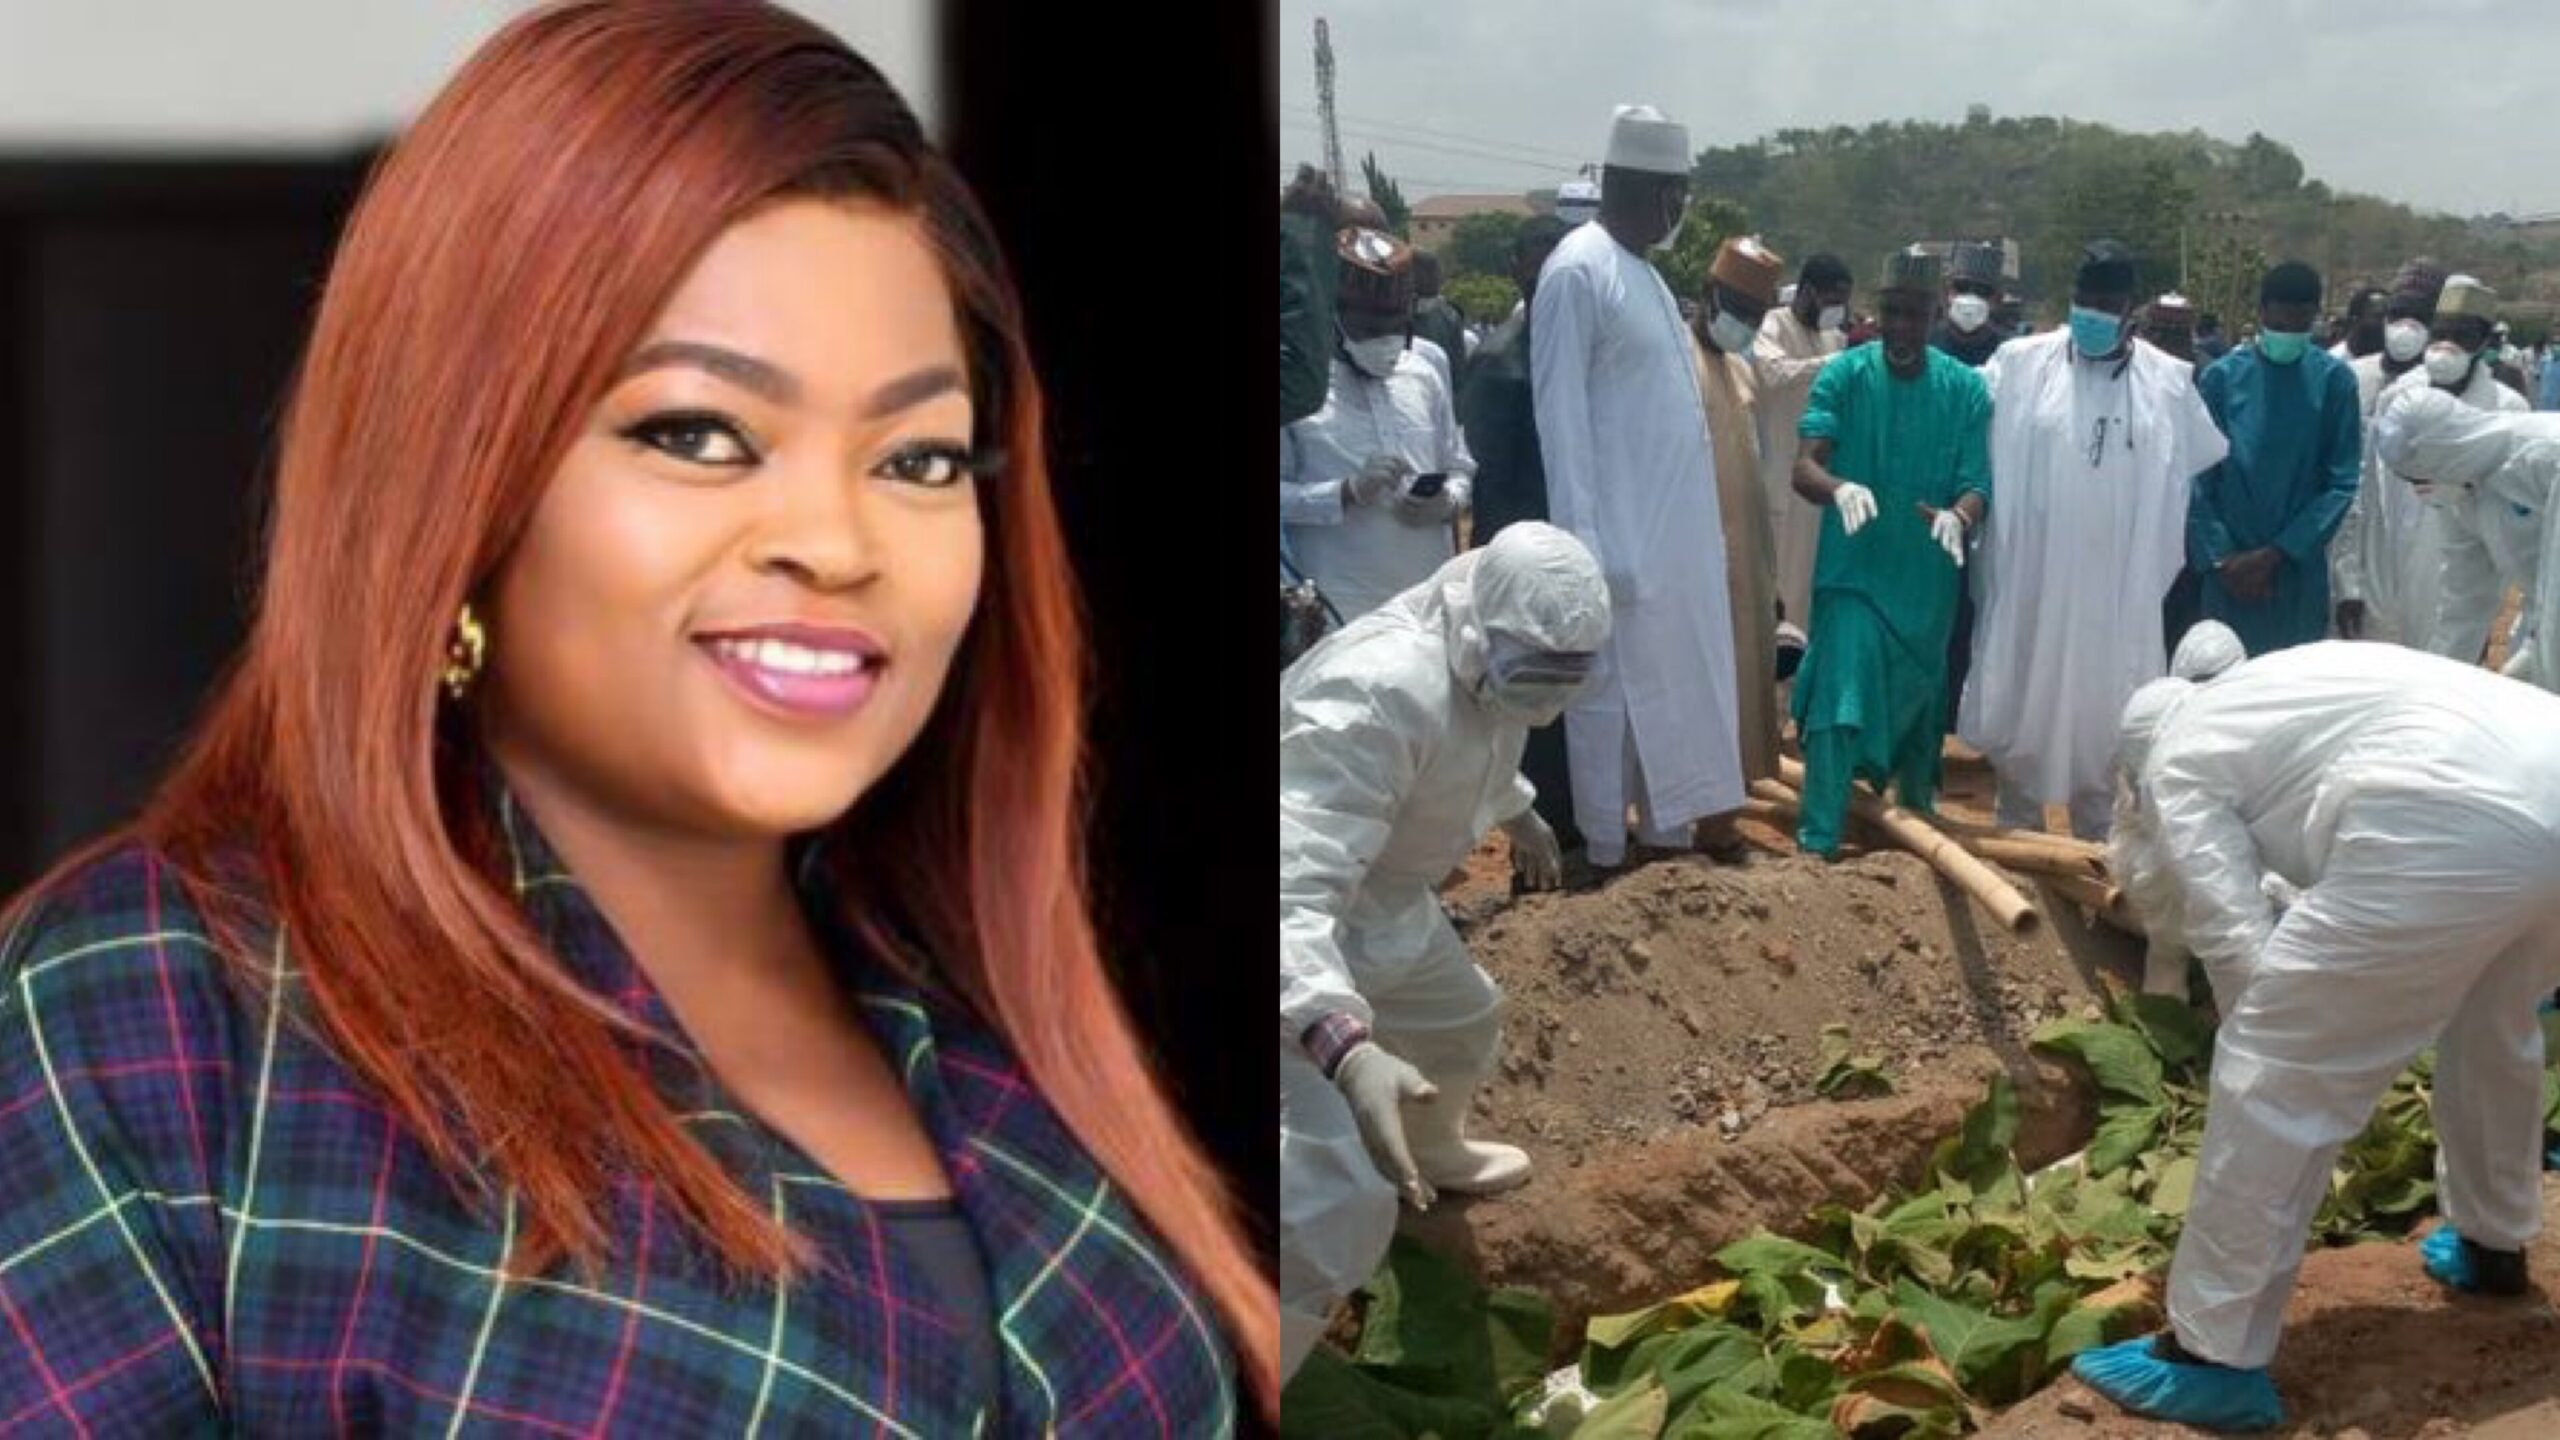 Cancel Funke Akindele's community service and fine now - Nigerians demand after crowd gather for Abba Kyari's burial